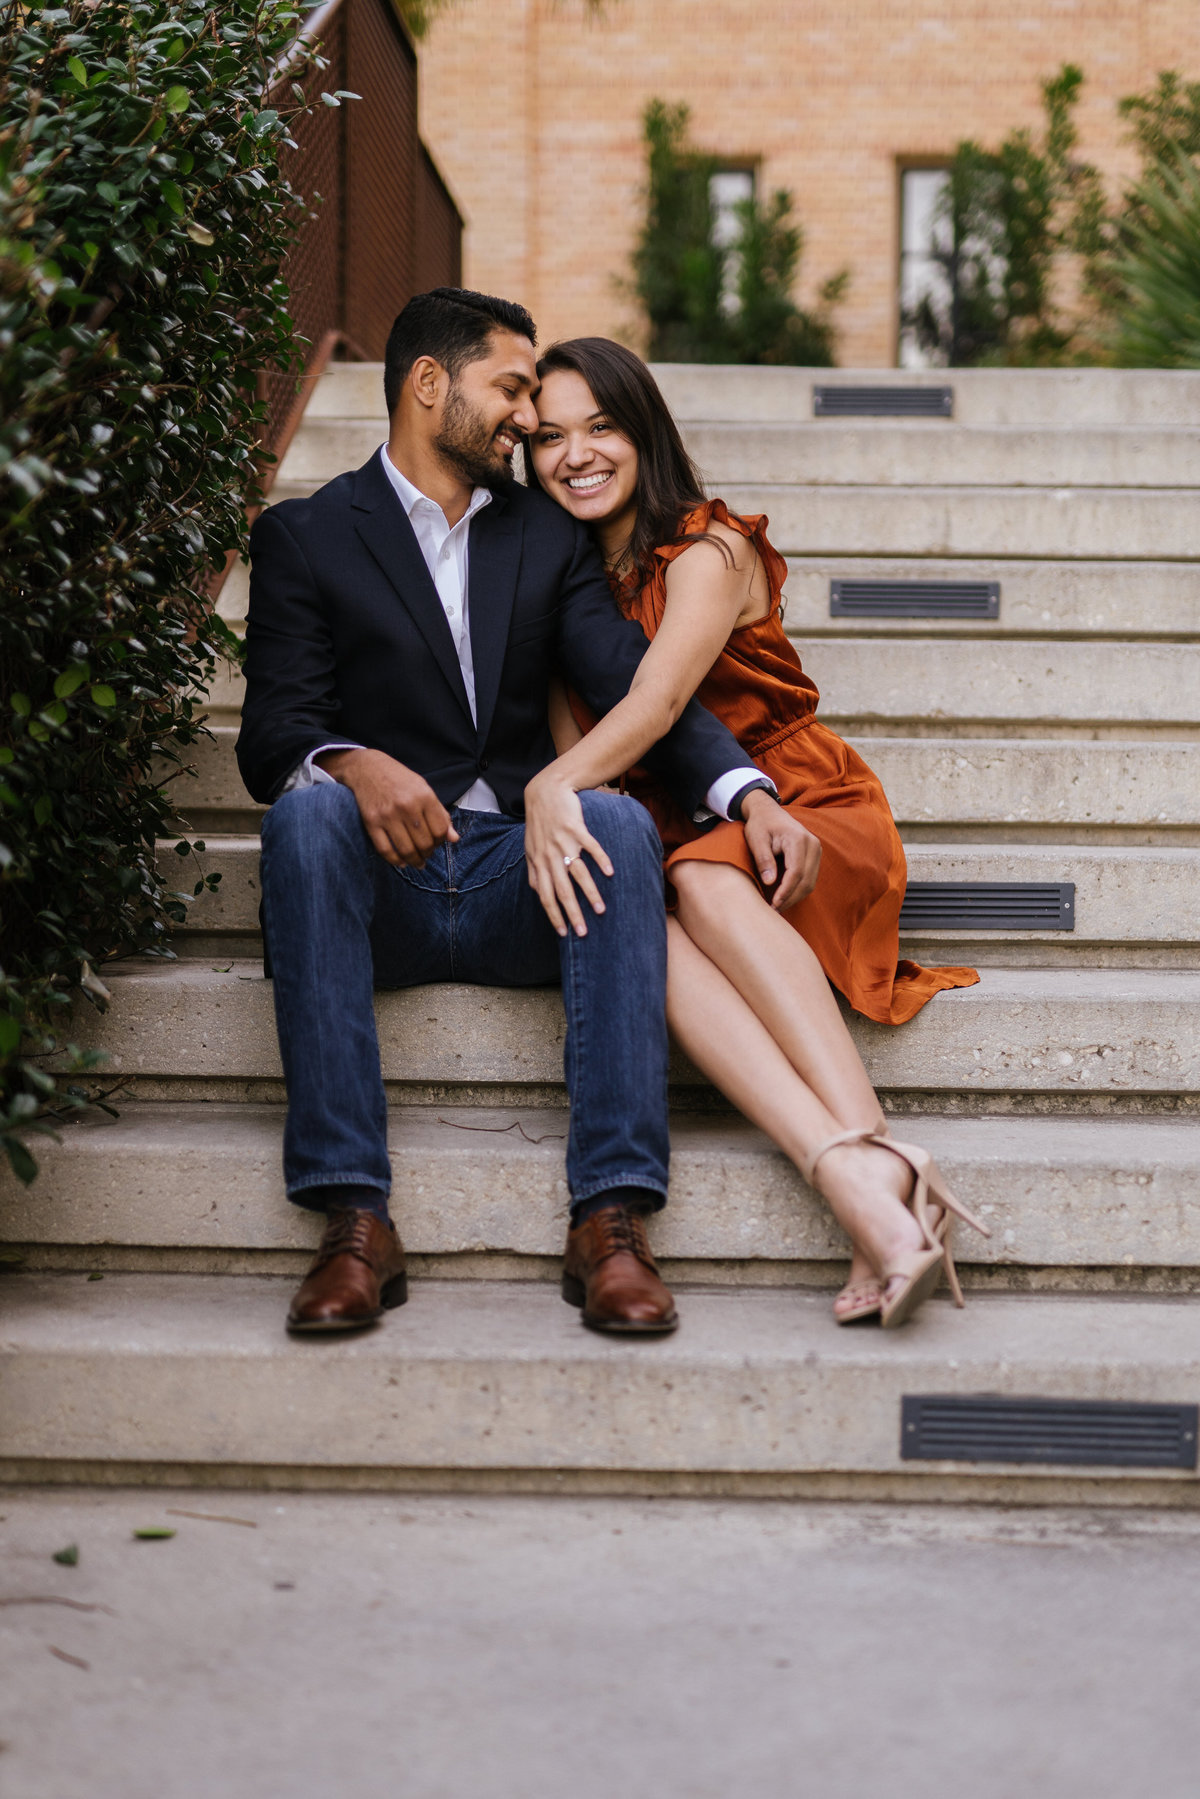 Fiancé staring at his fiancée sitting on steps at the Historic pearl while on their engagement session by Expose The Heart.